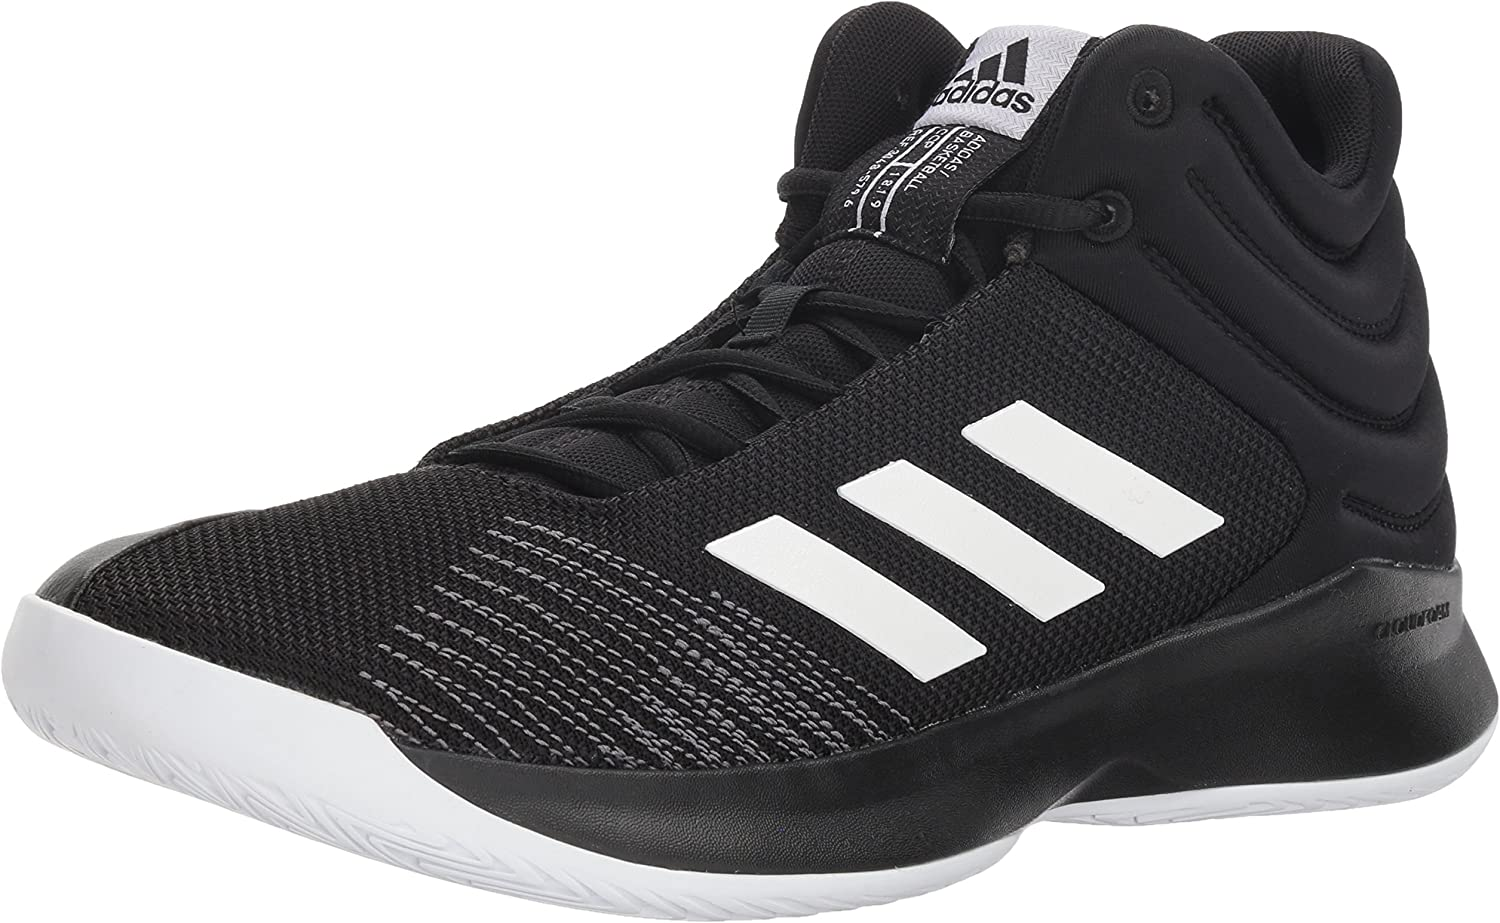 Adidas Men's Pro Spark 2018 Basketball shoes